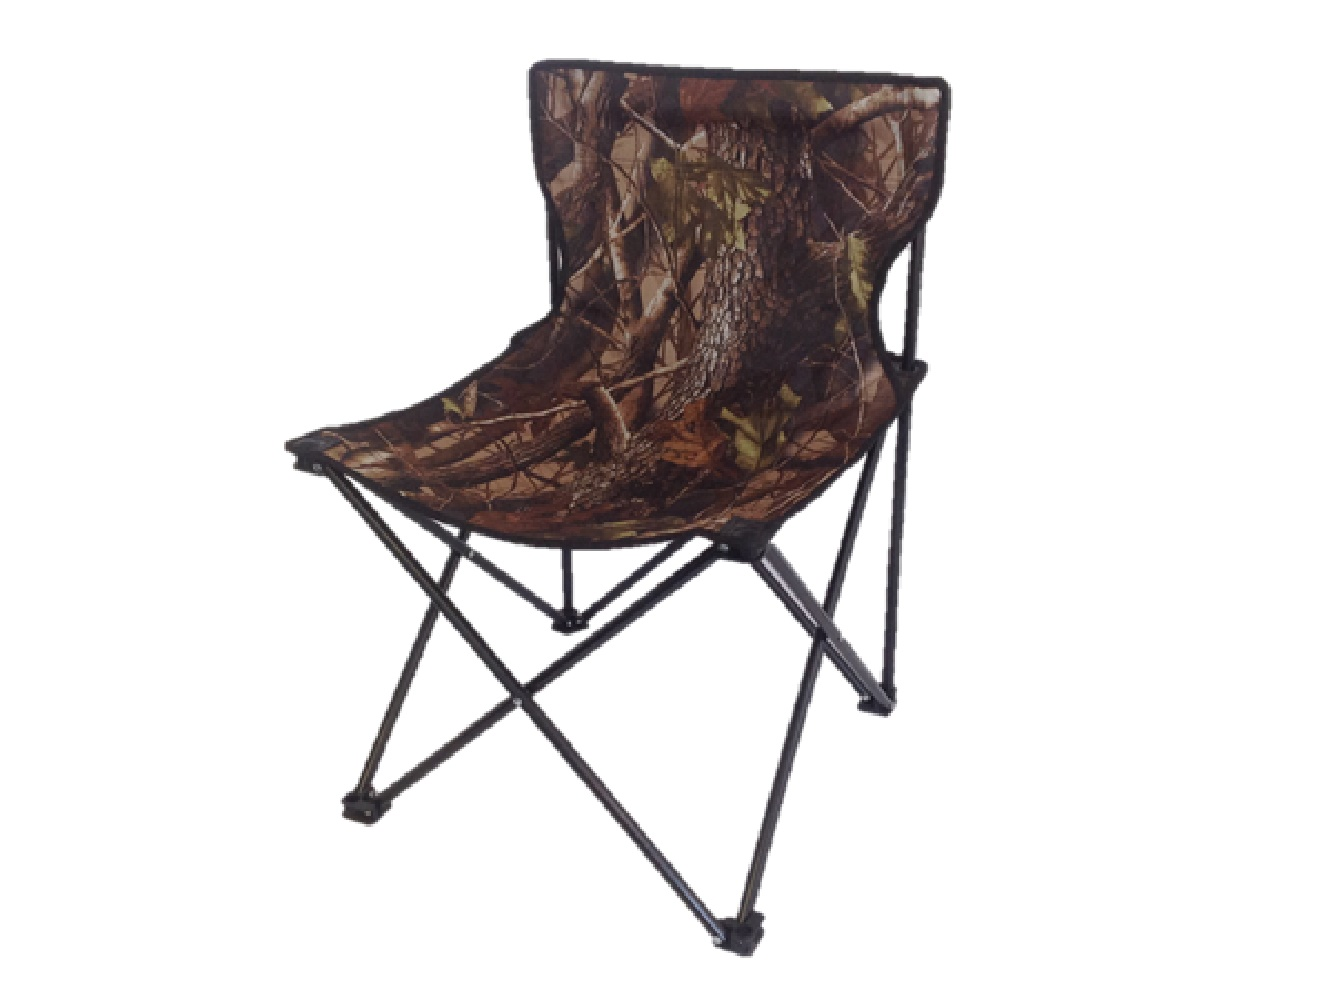 Folding Chair for Camping Garden Festival Fishing Portable Foldaway Seat New